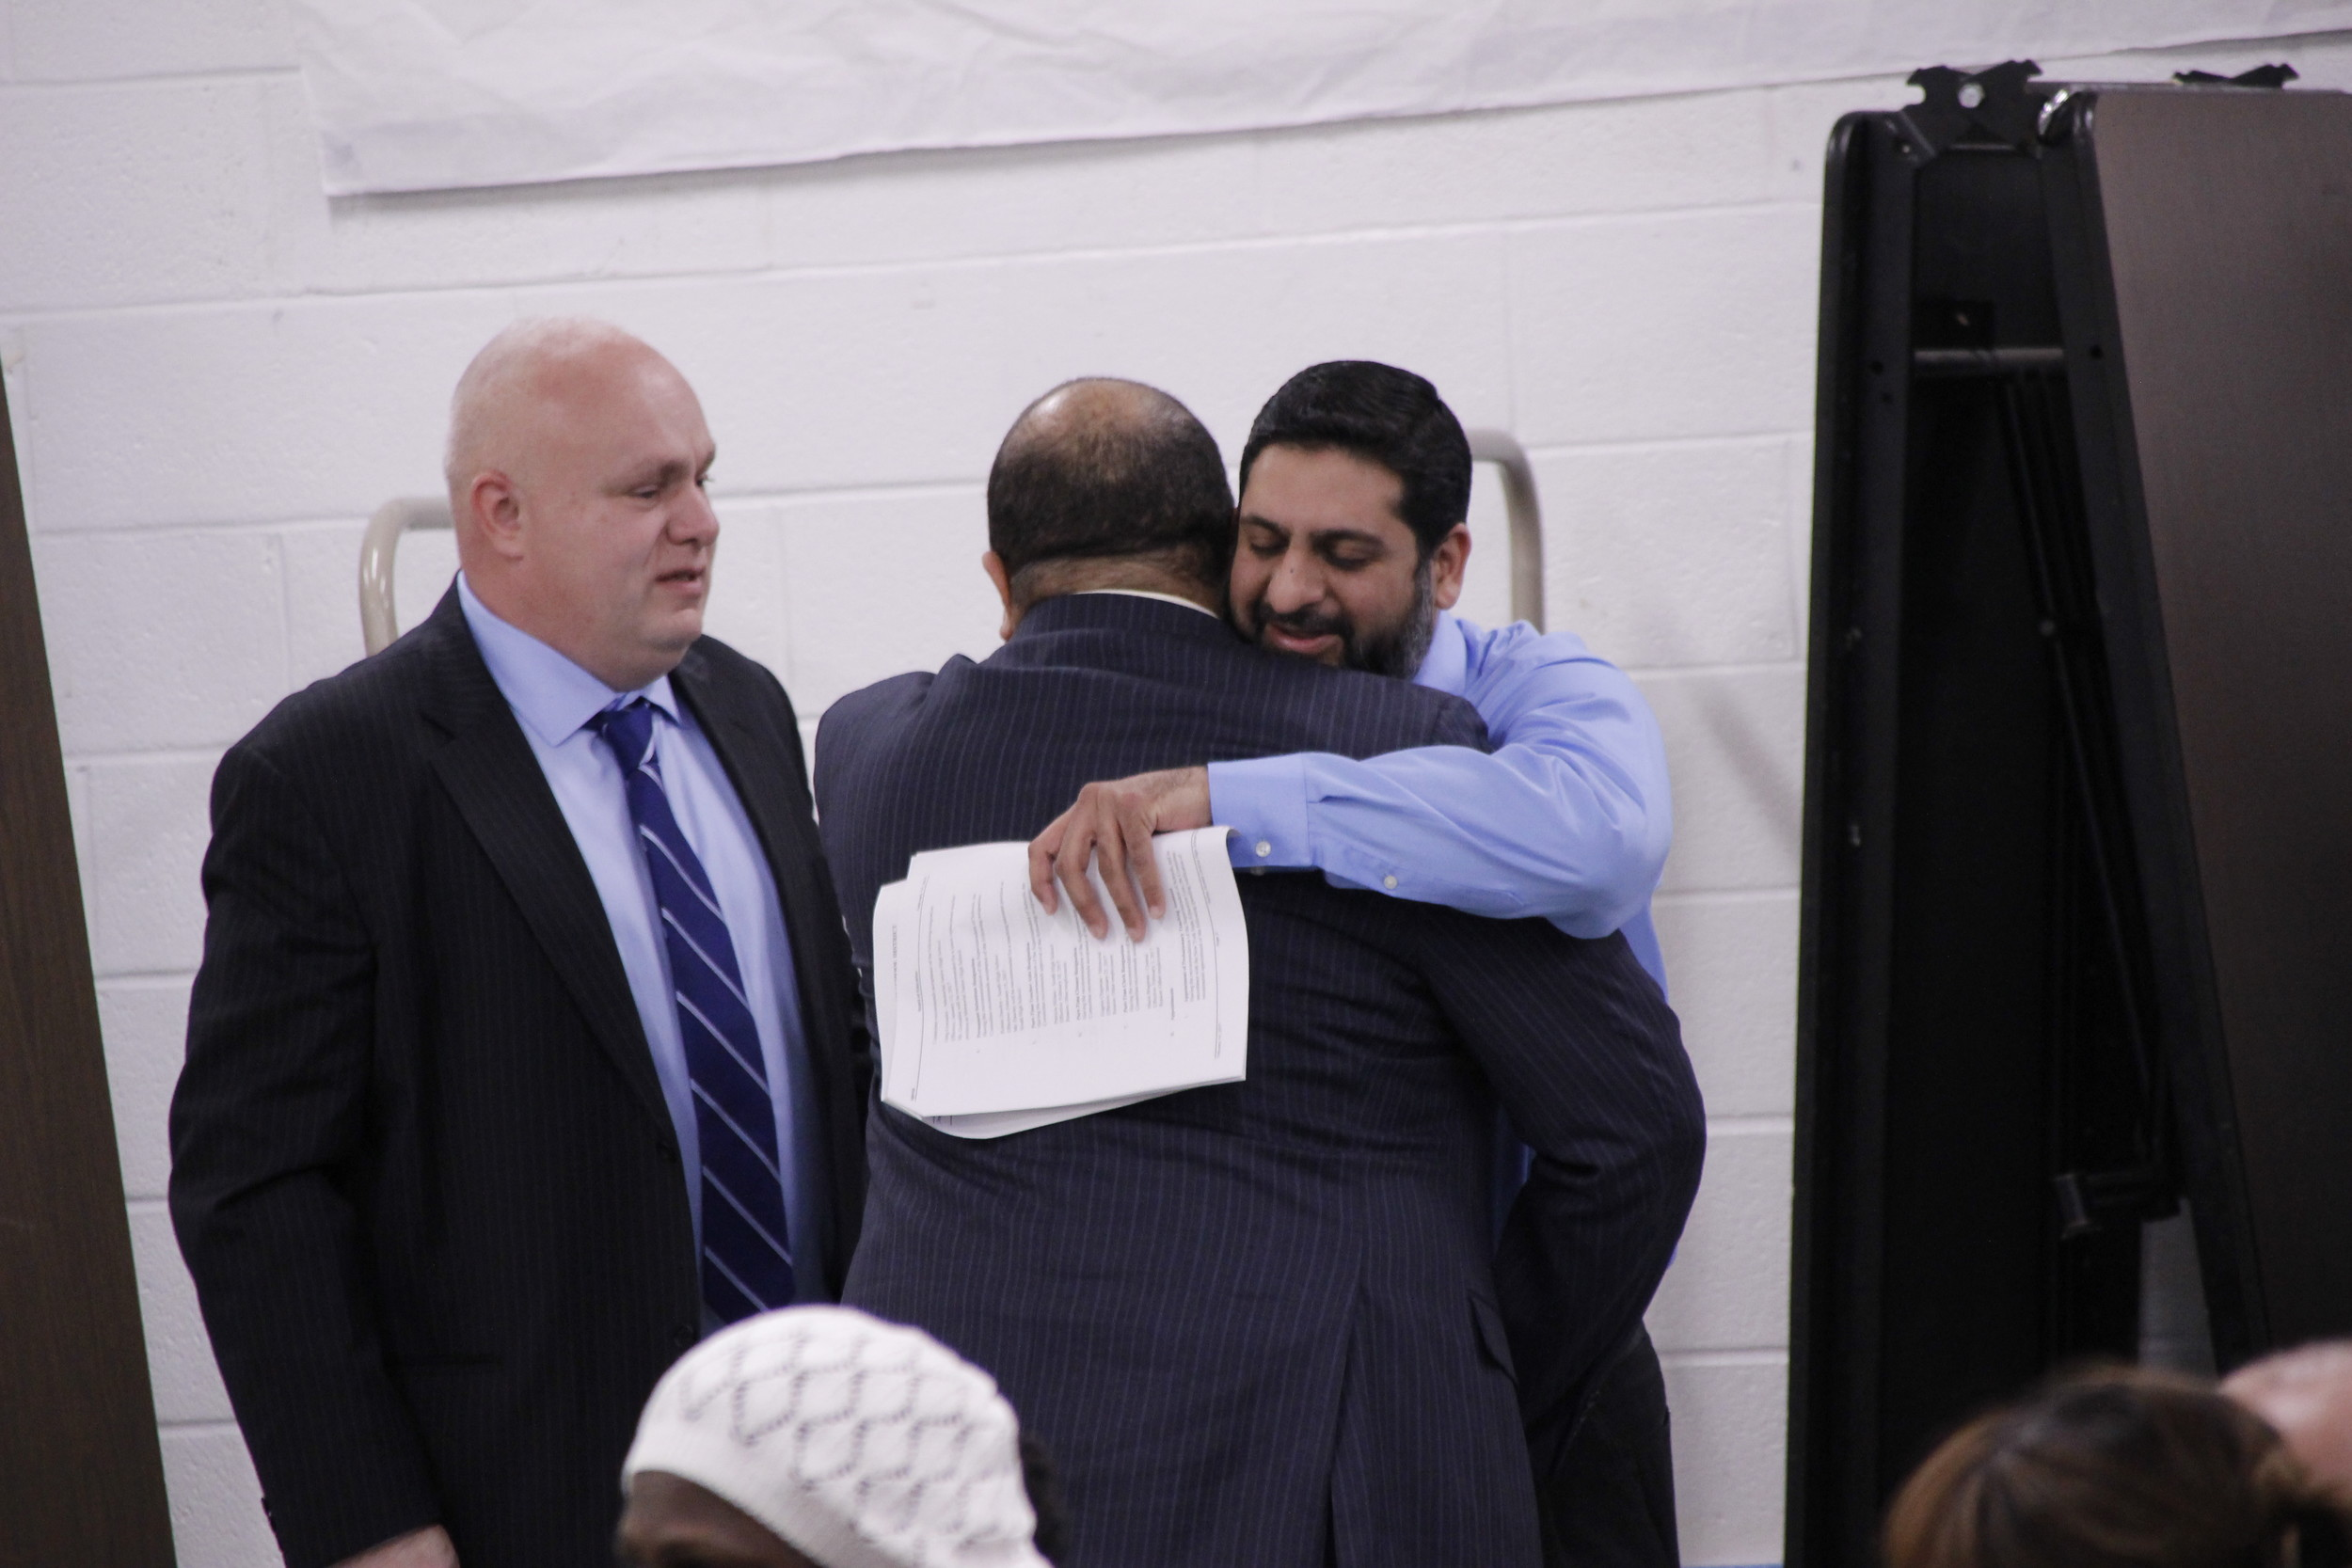 Valley stream high schools to recognize islamic holidays herald karim mozawalla right a trustee of islamic center of south shore embraced school kristyandbryce Images